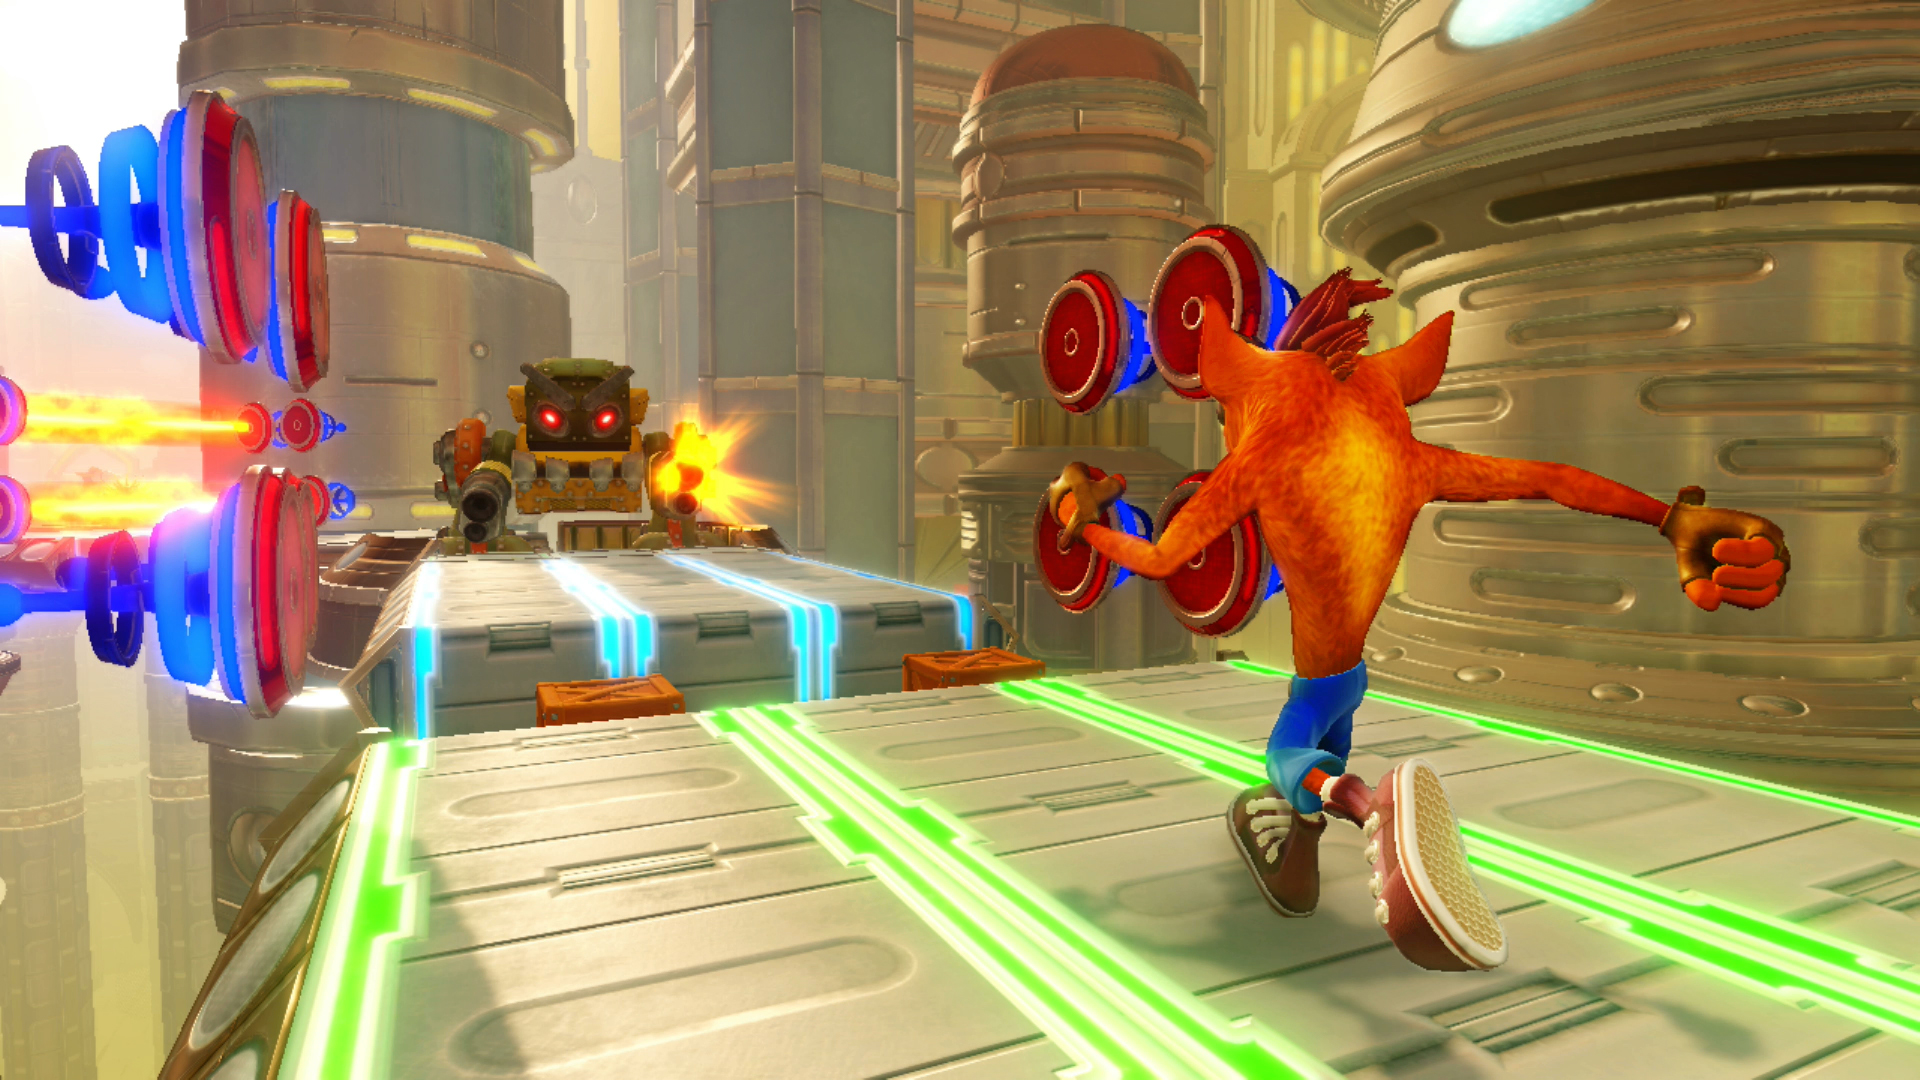 Things are About to Get Tense, Future Tense in the All New Level for Crash Bandicoot N. Sane Trilogy